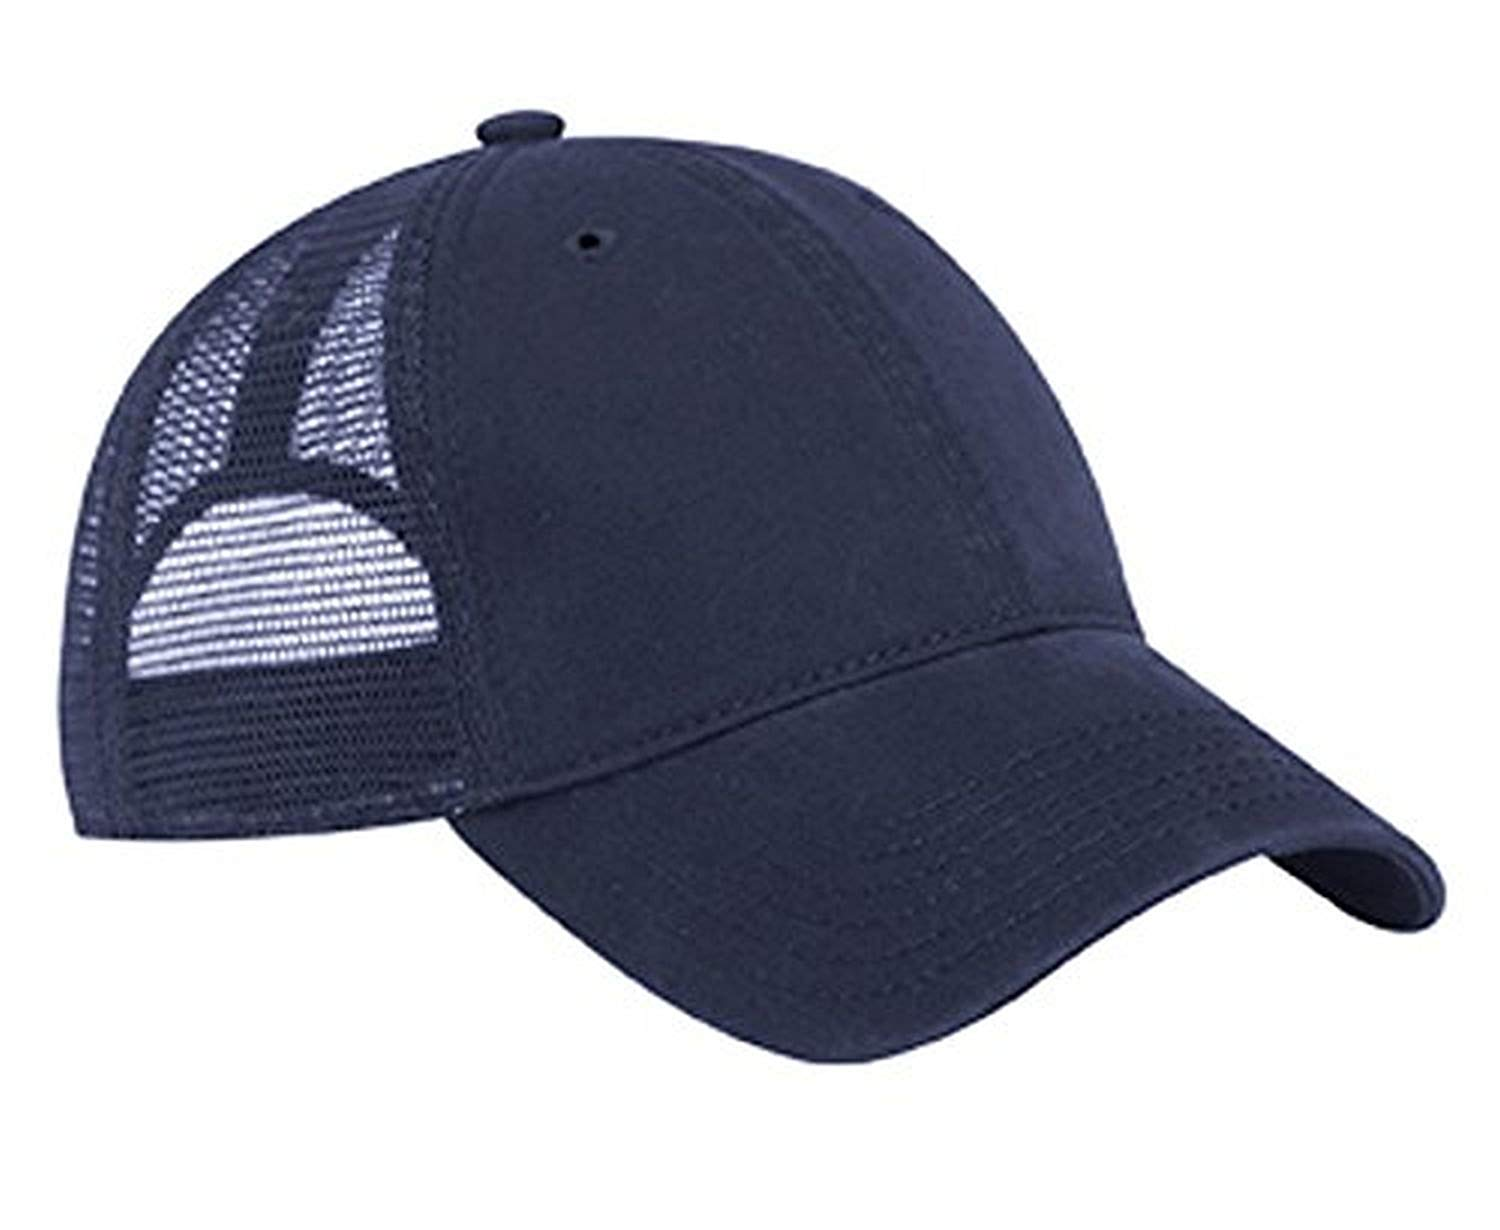 Hats & Caps Shop Superior Garment Washed Cn Twill Low Profile Pro Style Mesh Back Caps - By TheTargetBuys